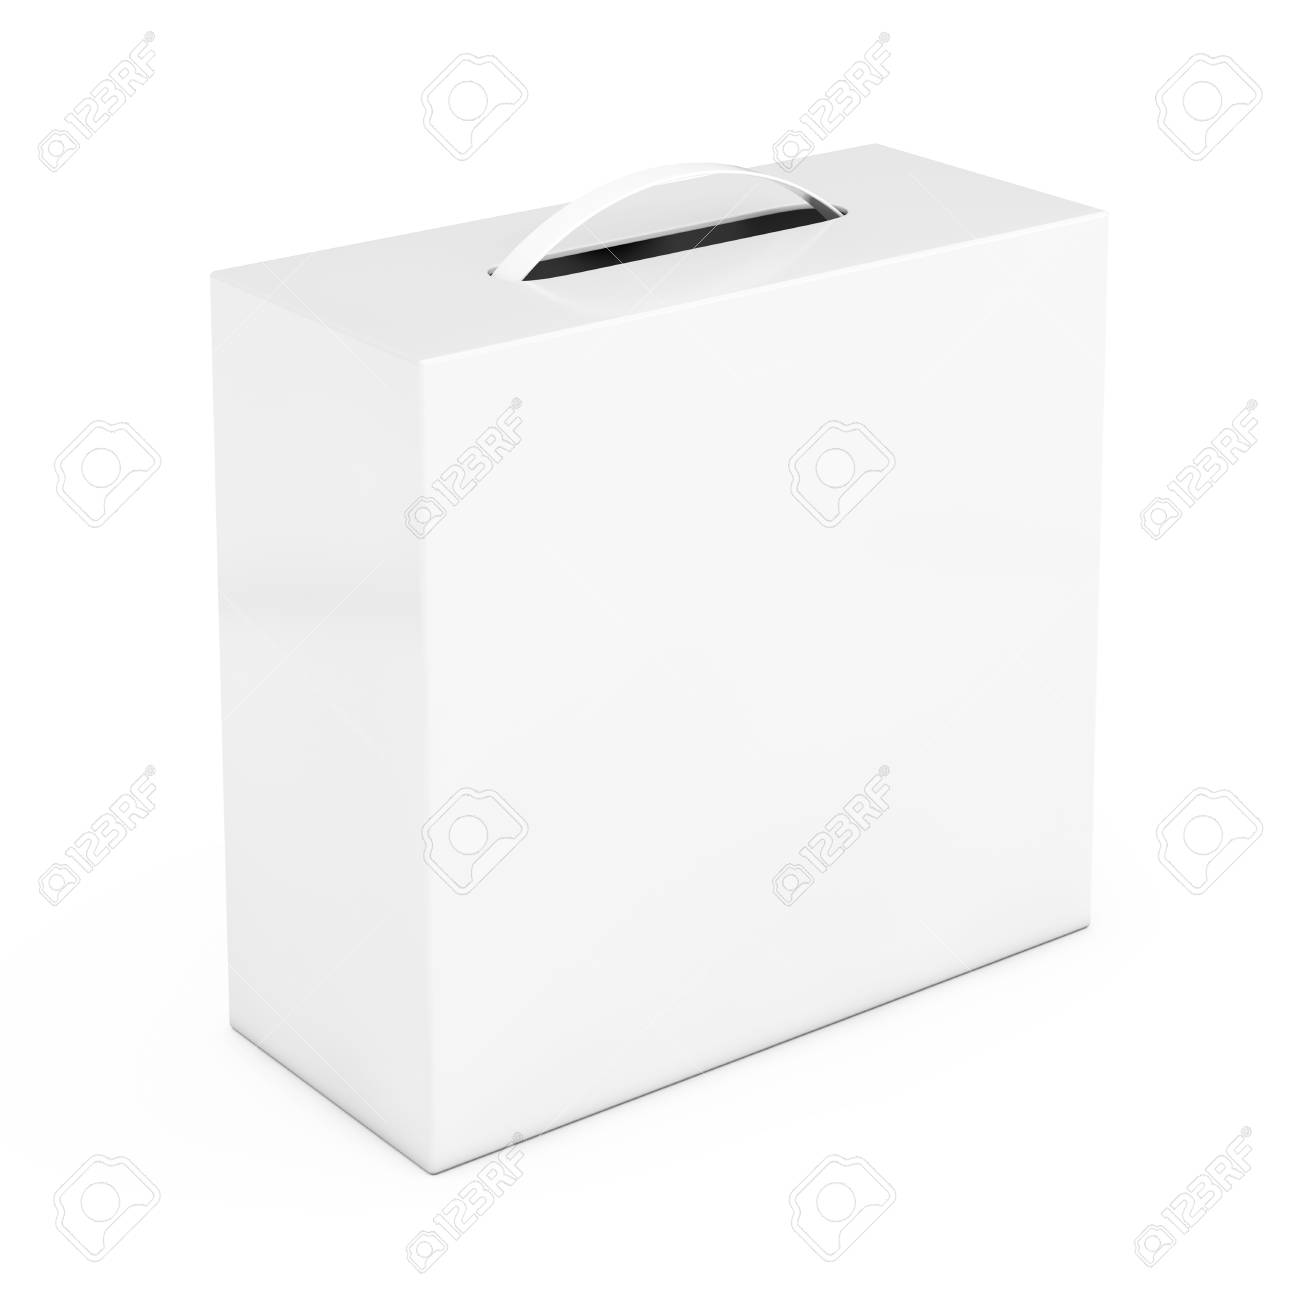 Blank White Cardboard Box Mockup With Plastic Handle On A White